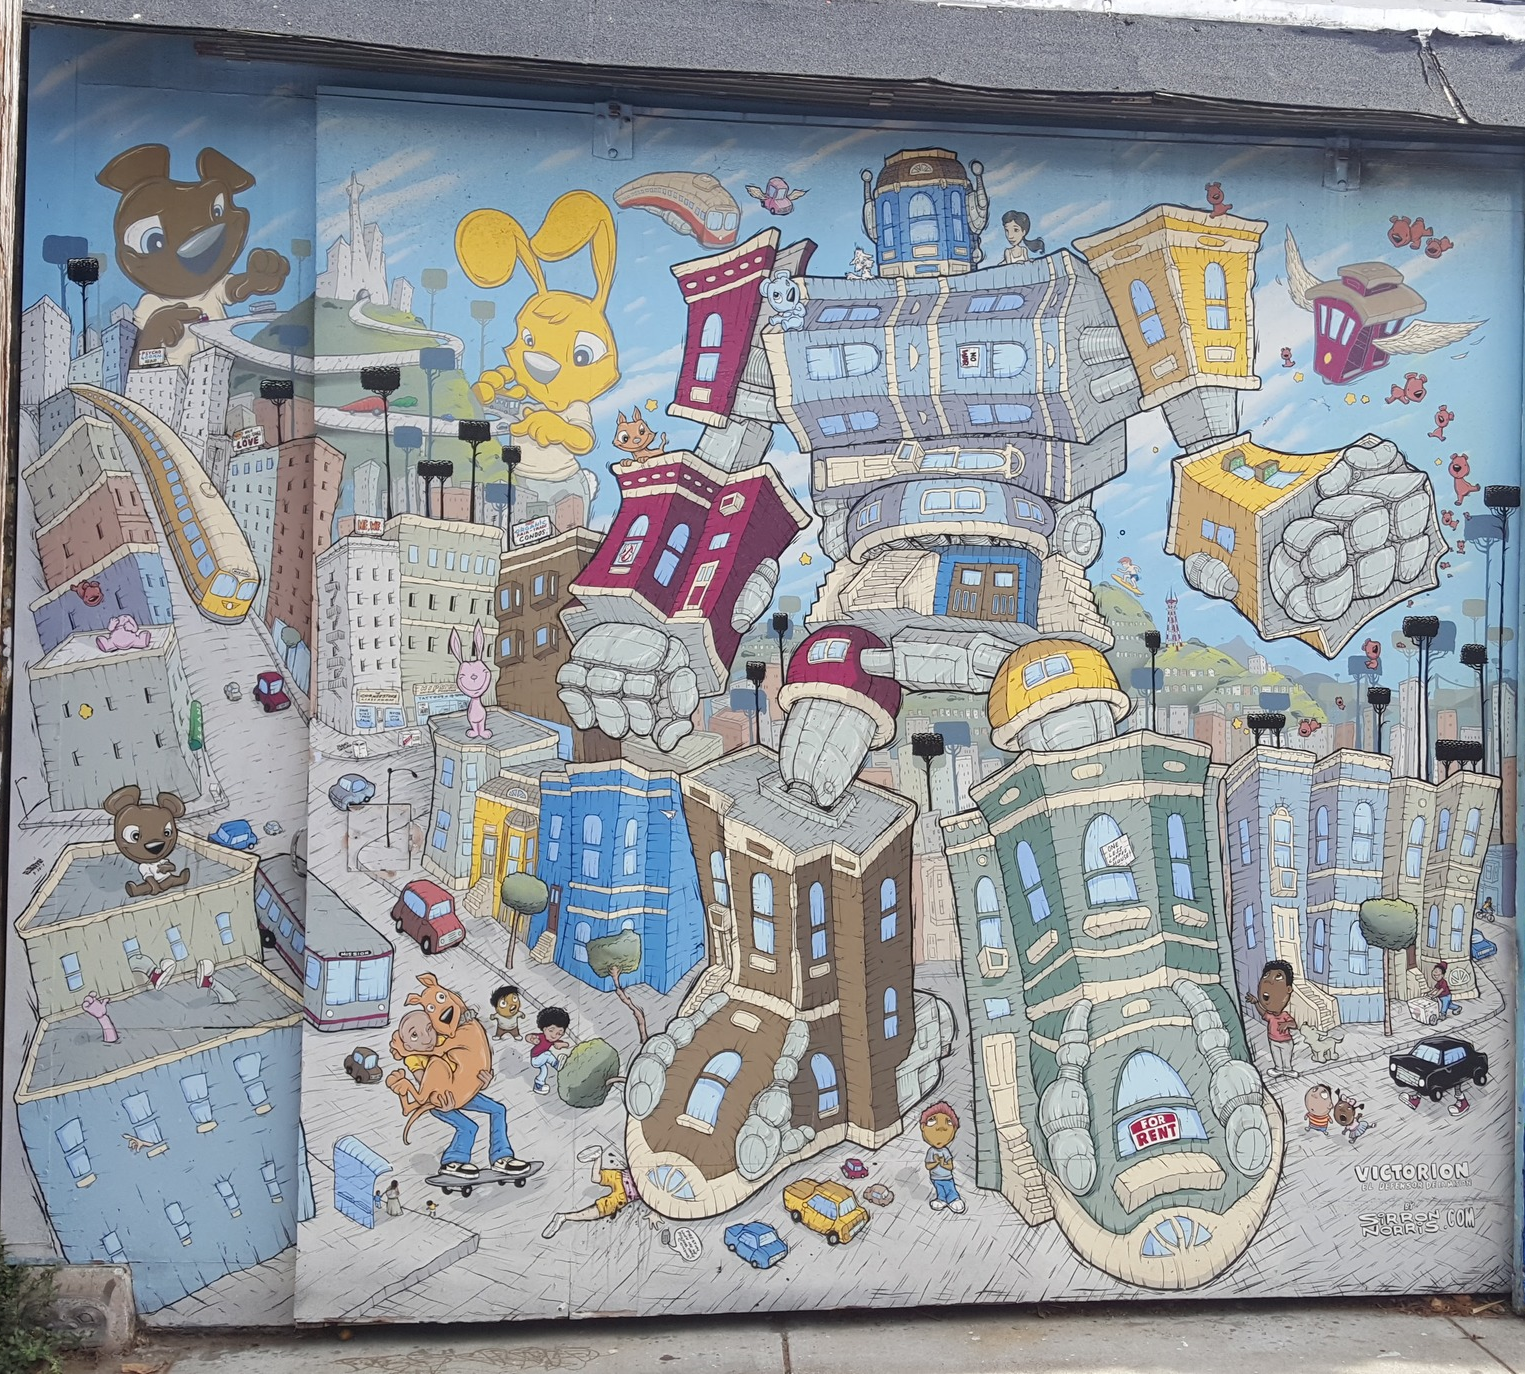 One of my favorite murals that day - Victorian homes during dotcom bubble